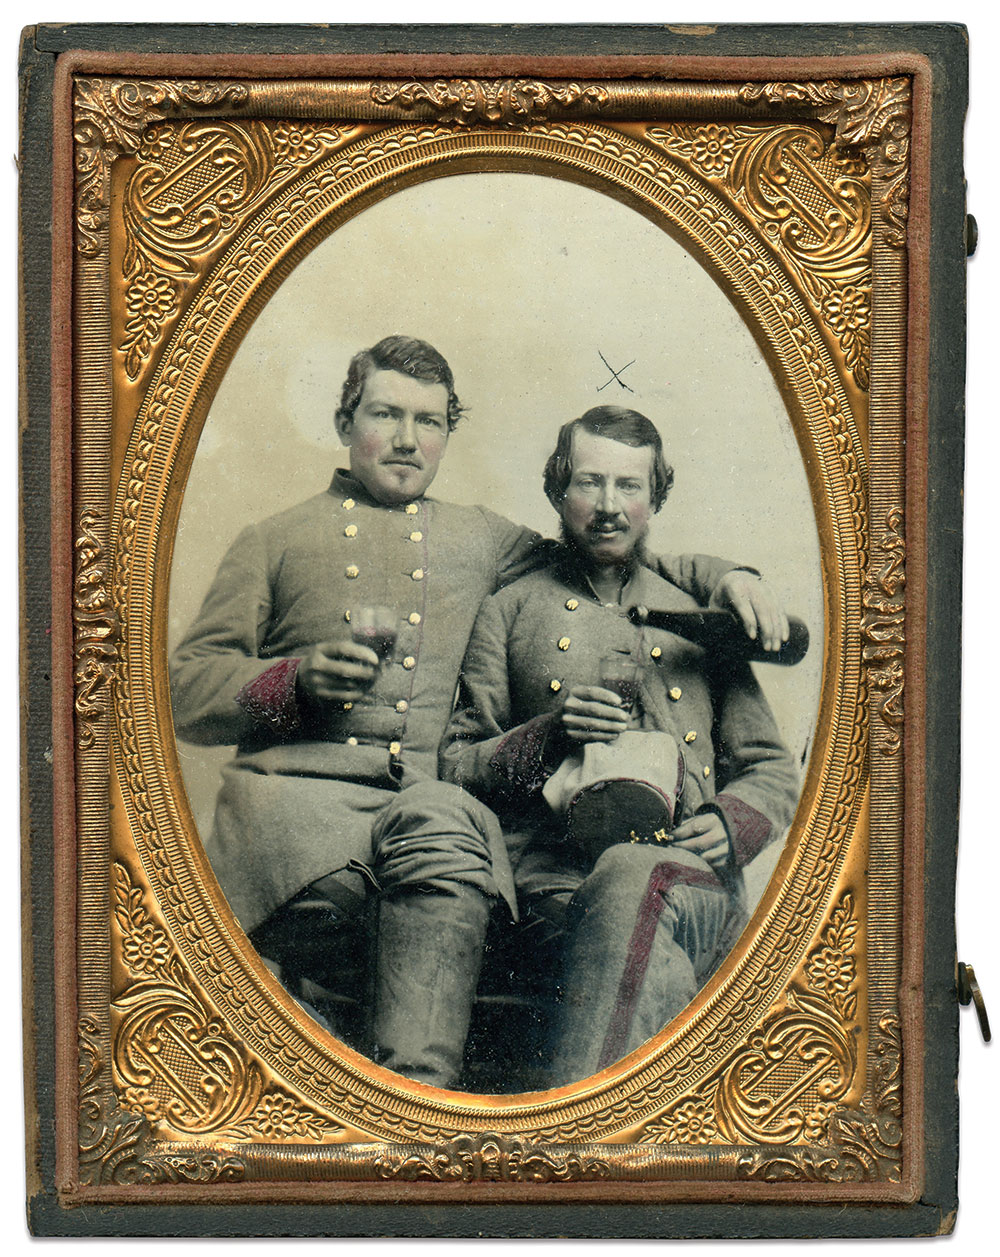 Quarter-plate ambrotype by an anonymous photographer. Daniel Taylor Collection.